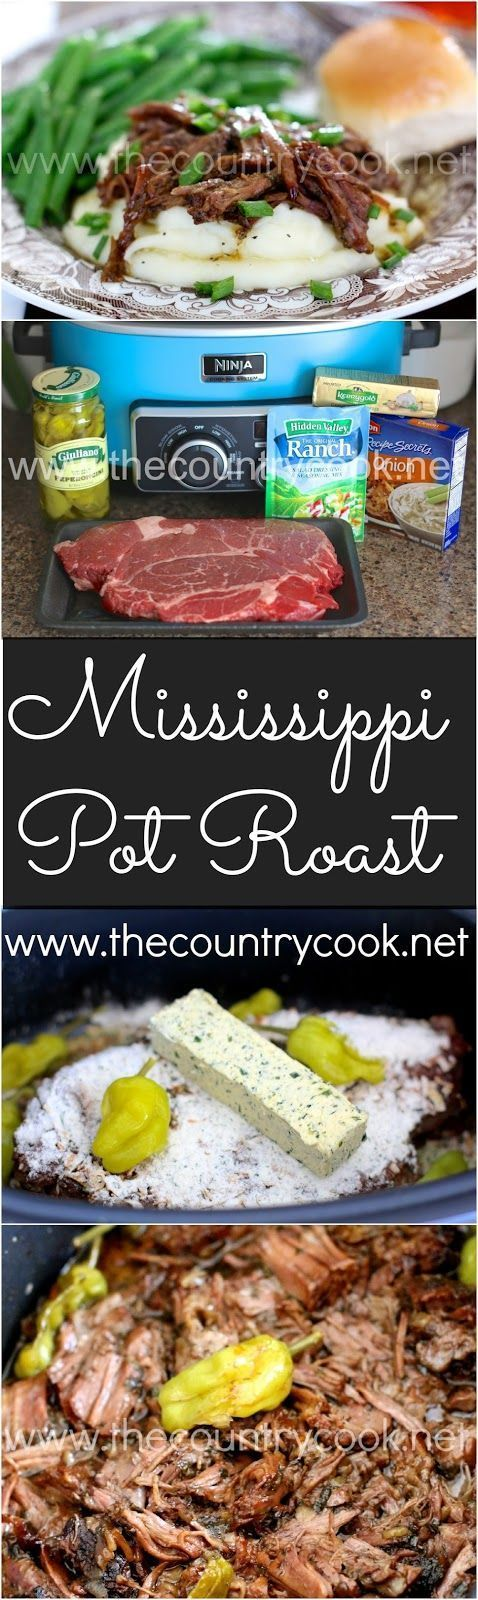 Crock Pot Mississippi Pot Roast from The Country Cook. I think this is one of the best roasts I've ever eaten or made. So good. Serve on a sandwich bun or on mashed potatoes or rice!                                                                                                                                                                                 More